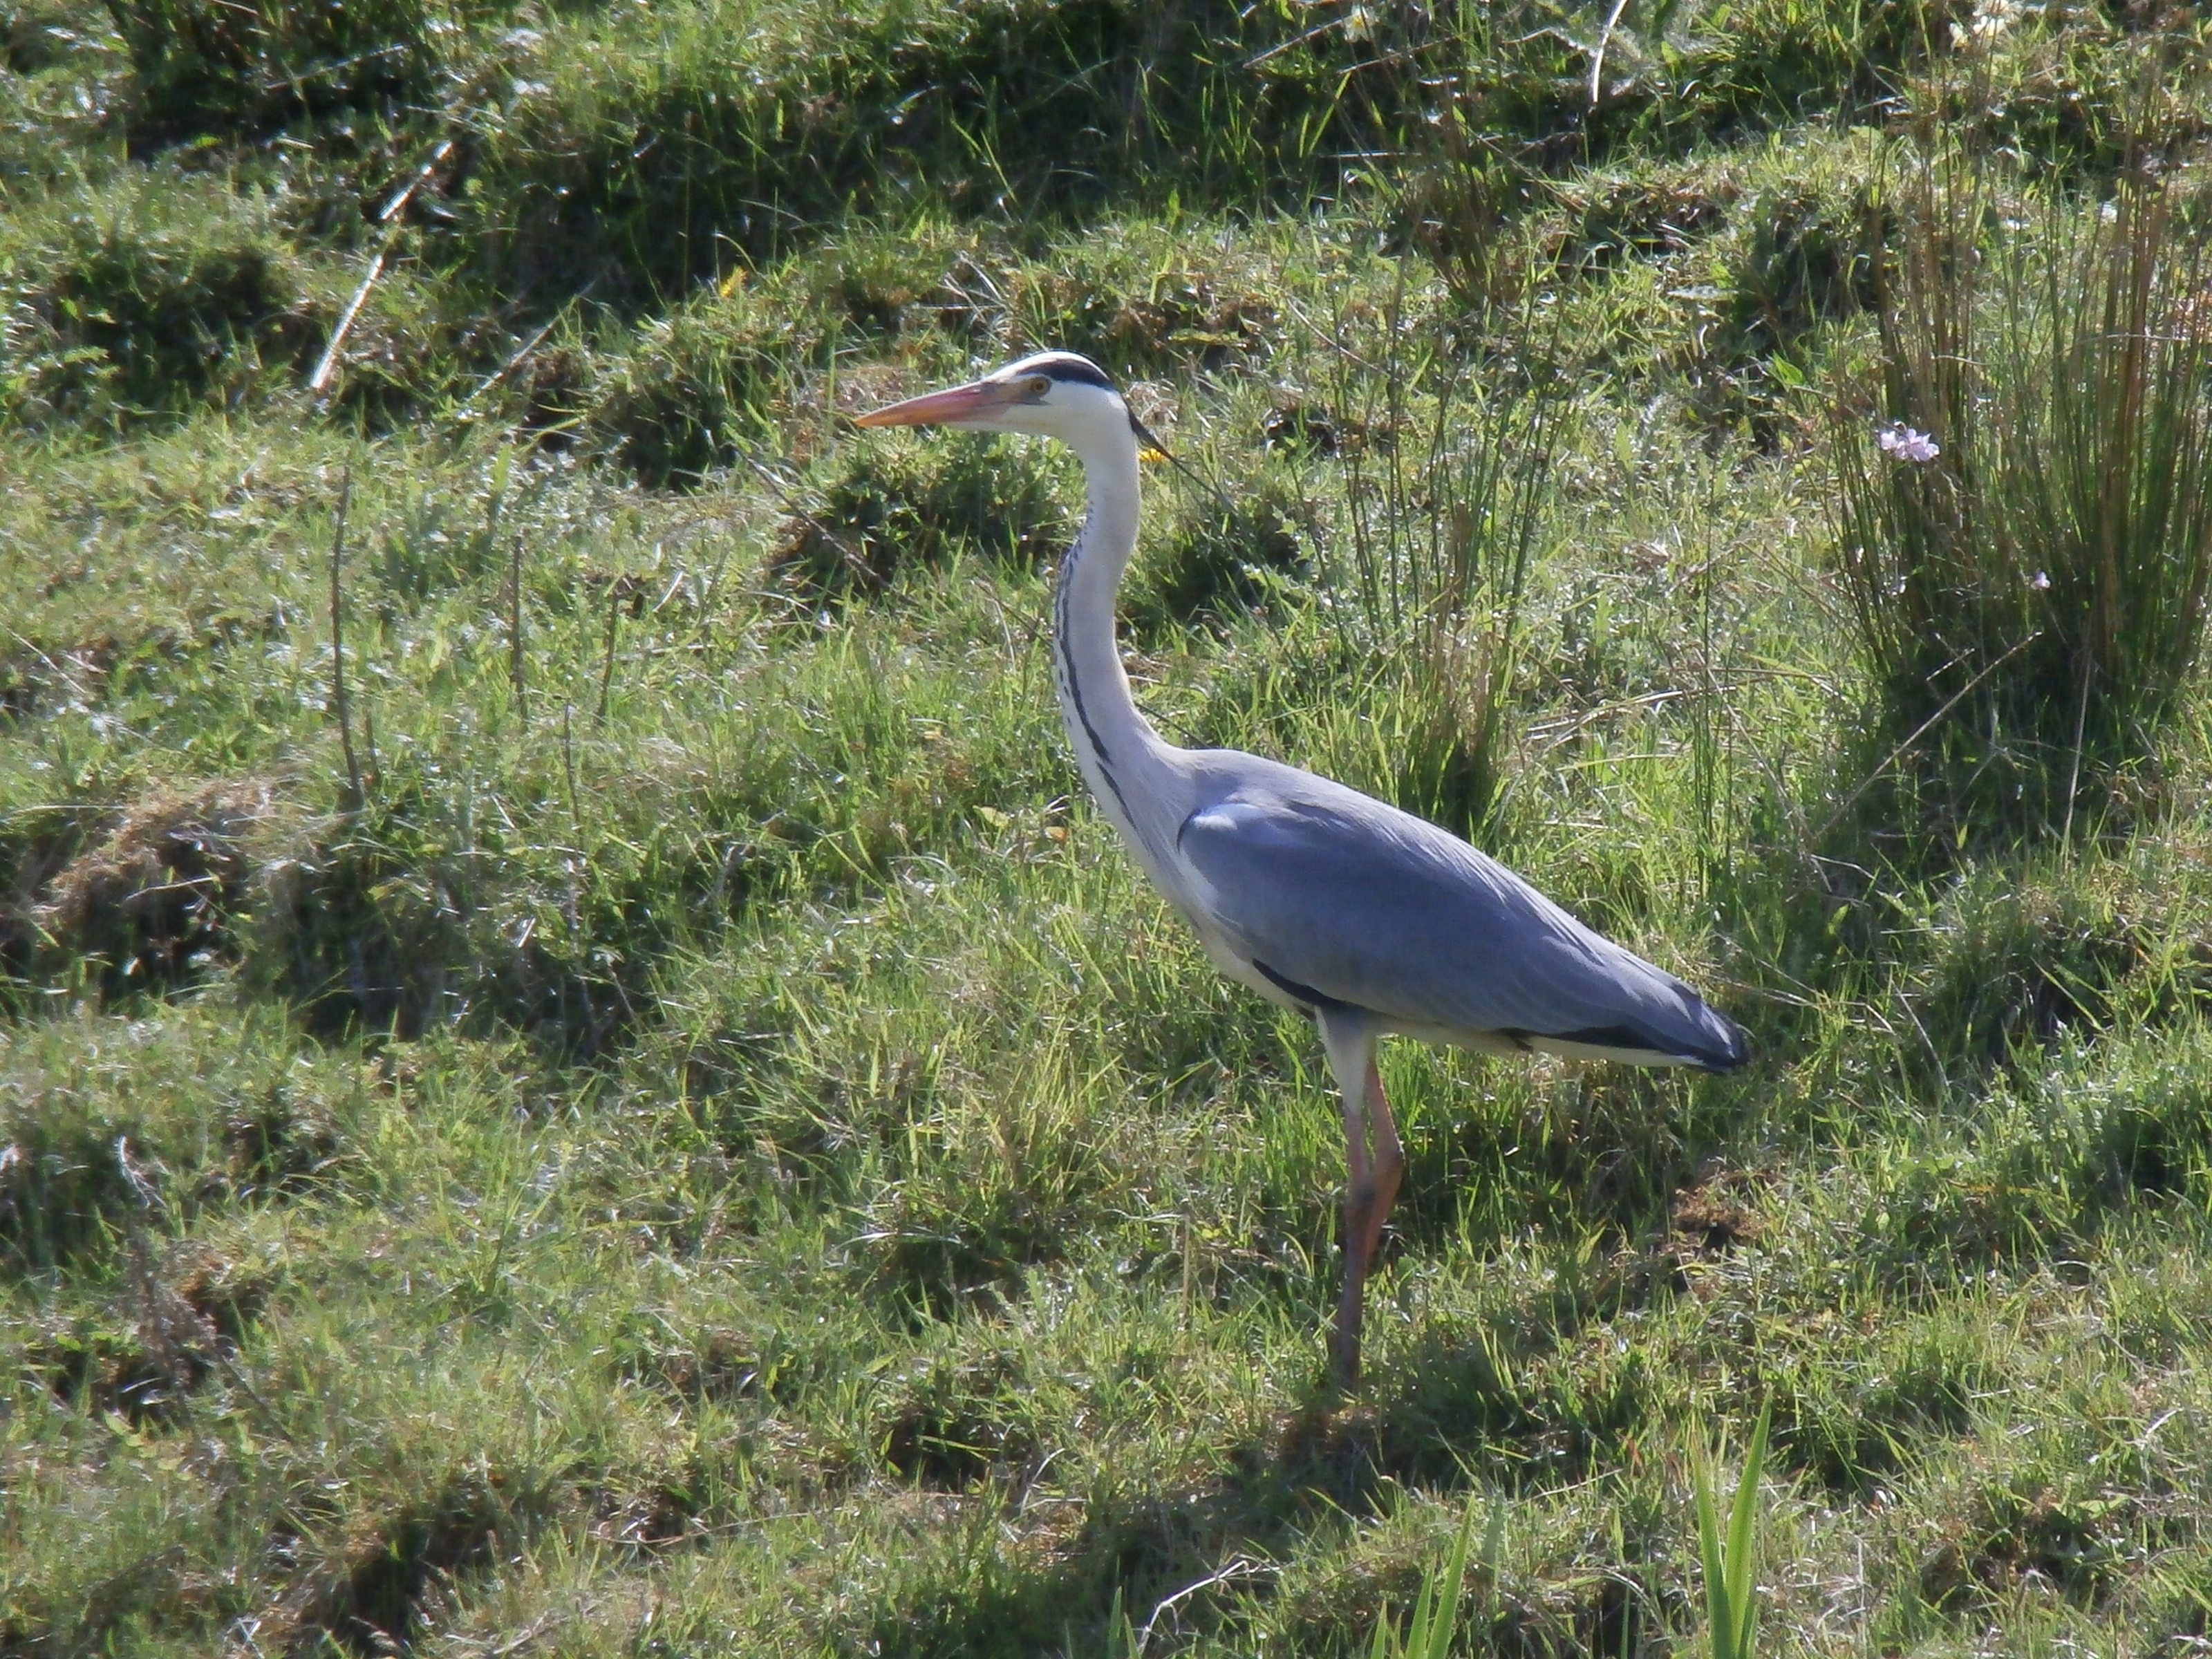 A heron on the banks of the Castlebar river